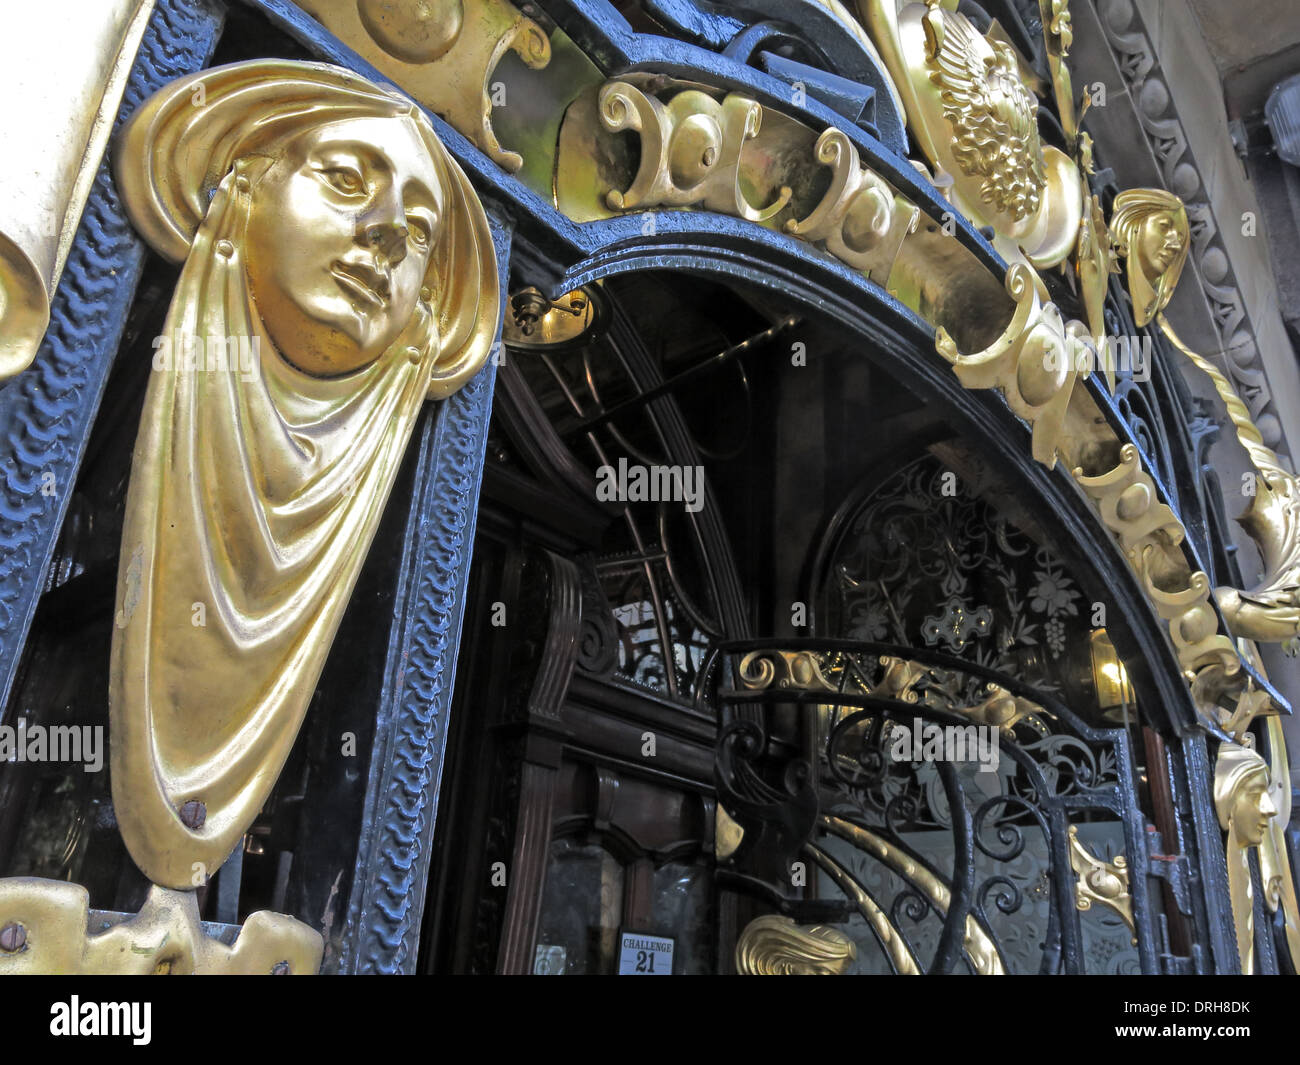 GB,great,britain,hope,st,street,tourist,trail,tourism,famous,pubs,bars,pub,bar,artdeco,art,deco,victorian,Cain,Cains,Tetley,GB,Great,Britain,British,CAMRA,real,ale,The,Phil,grade,2,gradeii,listed,building,exuberant,free,style,of,architecture,in,Gold,Liverpool,maritime,England,UK,doorway,archway,gotonysmith,Art,Nouveau,hardman,st,street,most,richly,decorated,of,Liverpools,Victorian,public,houses,Gem,gems,Pollard,and,Pevsner,in the Buildings of England series,state,that,it,is,the,most,richly,decorated,of,Liverpools,Victorian,public,houses,and that,.,arch,detail,details,face,faces,golden,The,Grade,II*,listing,means,that,it,is,included,among,.,Pye,describes,it,as,one,of,Liverpools,architectural,gems,heritage,Liverpools,scouse,Merseyside,L7,7EE,L77EE,bar,bars,boozer,bar,bars,boozer,pub,pubs,bars,bar,hotpixuk,@hotpixuk,@hotpixuk,Phillharmonic,Philharmonic pub liverpool pub,Liverpool Pubs,pubs,bars,bar,history,historic,it is of exceptional quality in national terms,particularly important buildings of more than special interest,Buy Pictures of,Buy Images Of,Liverpool Pub,Liverpool Pubs,Liverpool Pub,Liverpool Pubs